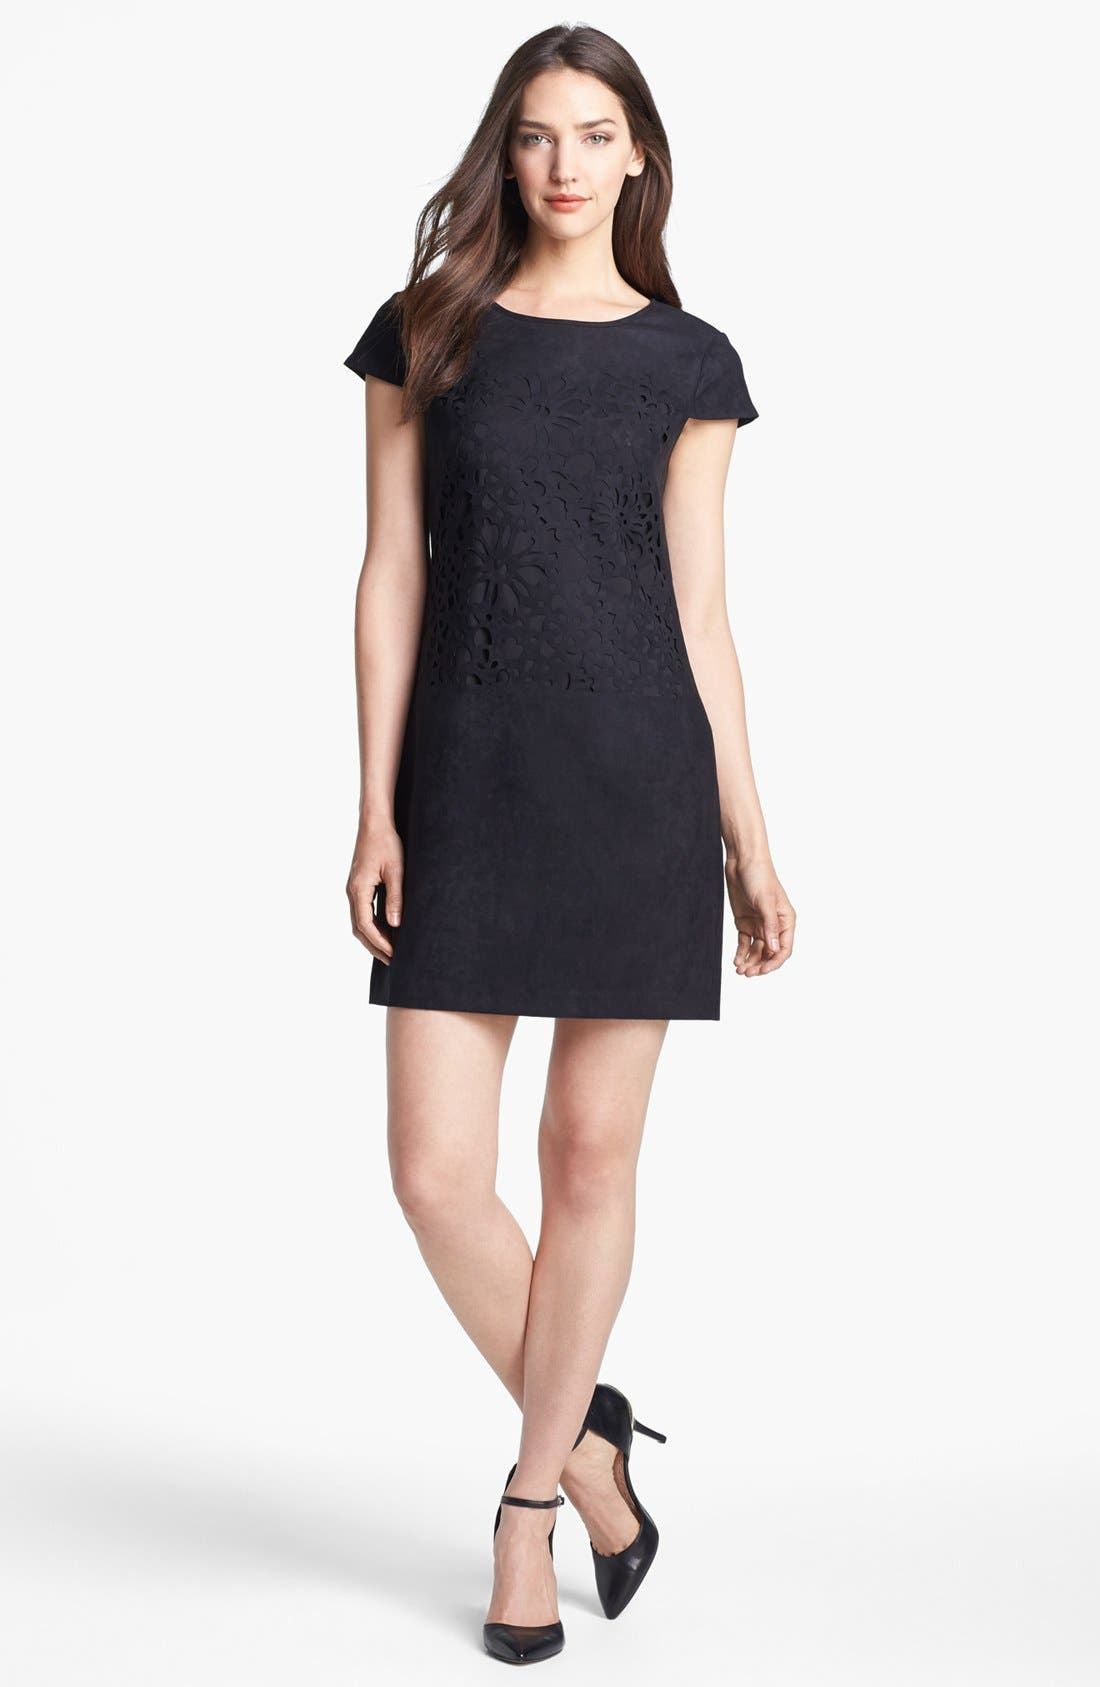 Alternate Image 1 Selected - Jessica Simpson Laser Cut Faux Suede Shift Dress (Online Only)